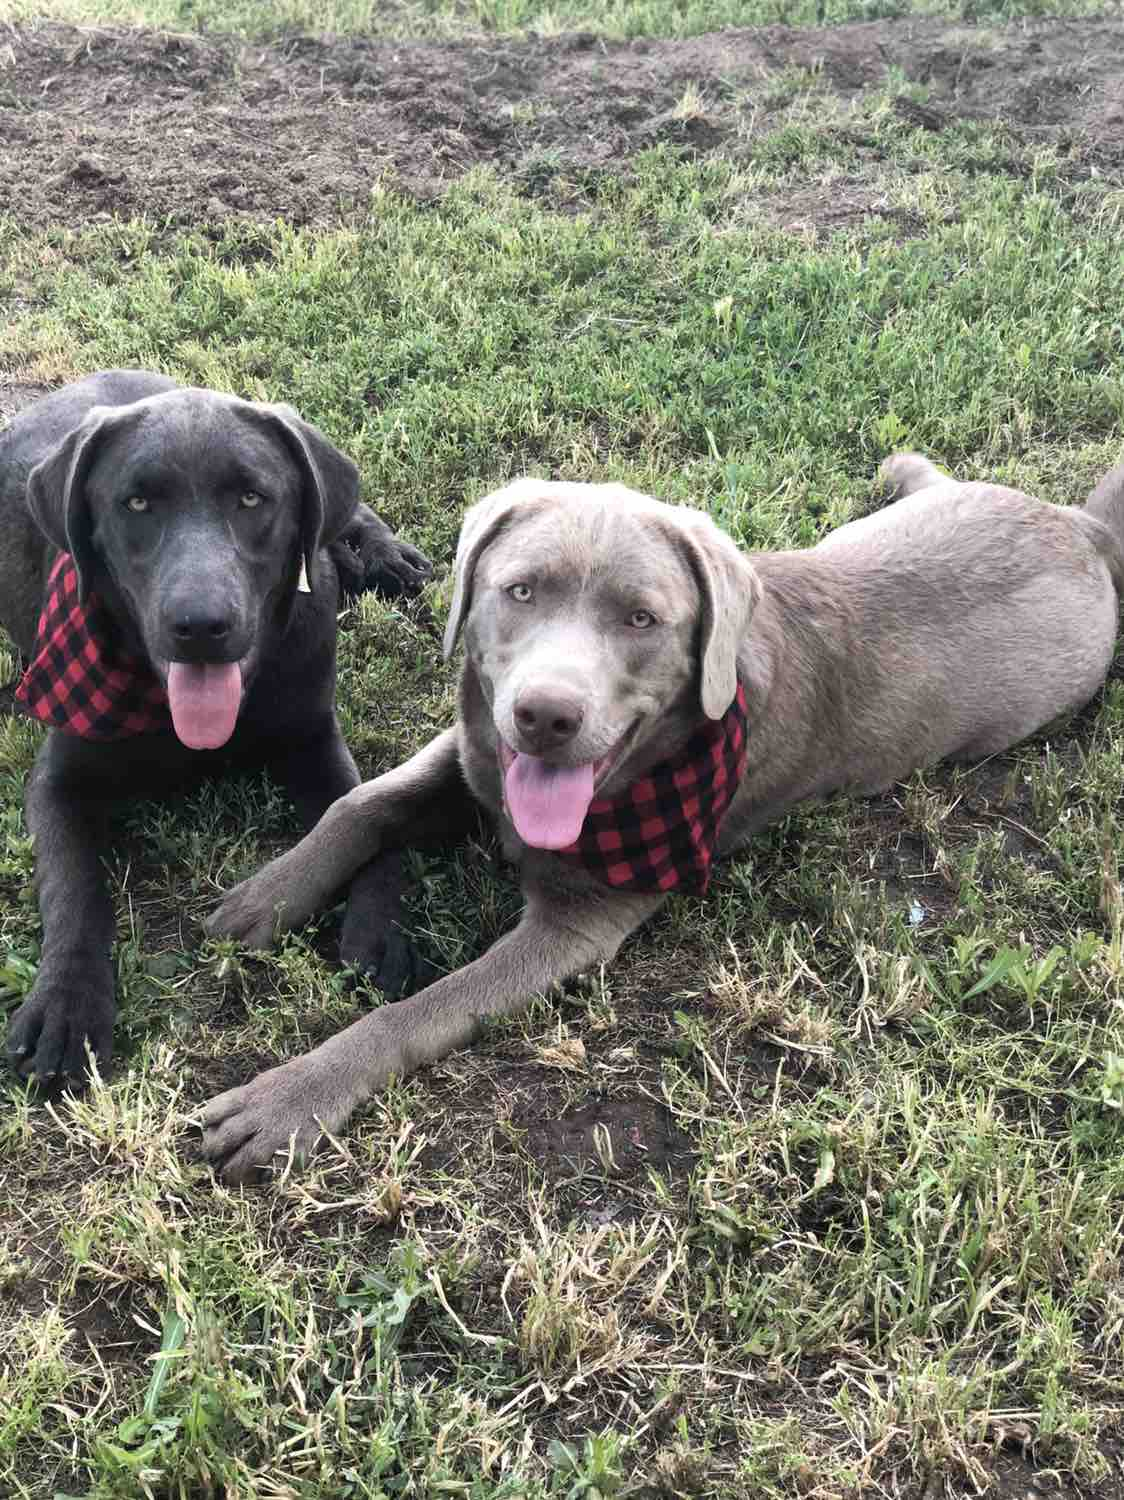 Fundraiser by Sis Mcfall : Colt the Silver Labrador needs